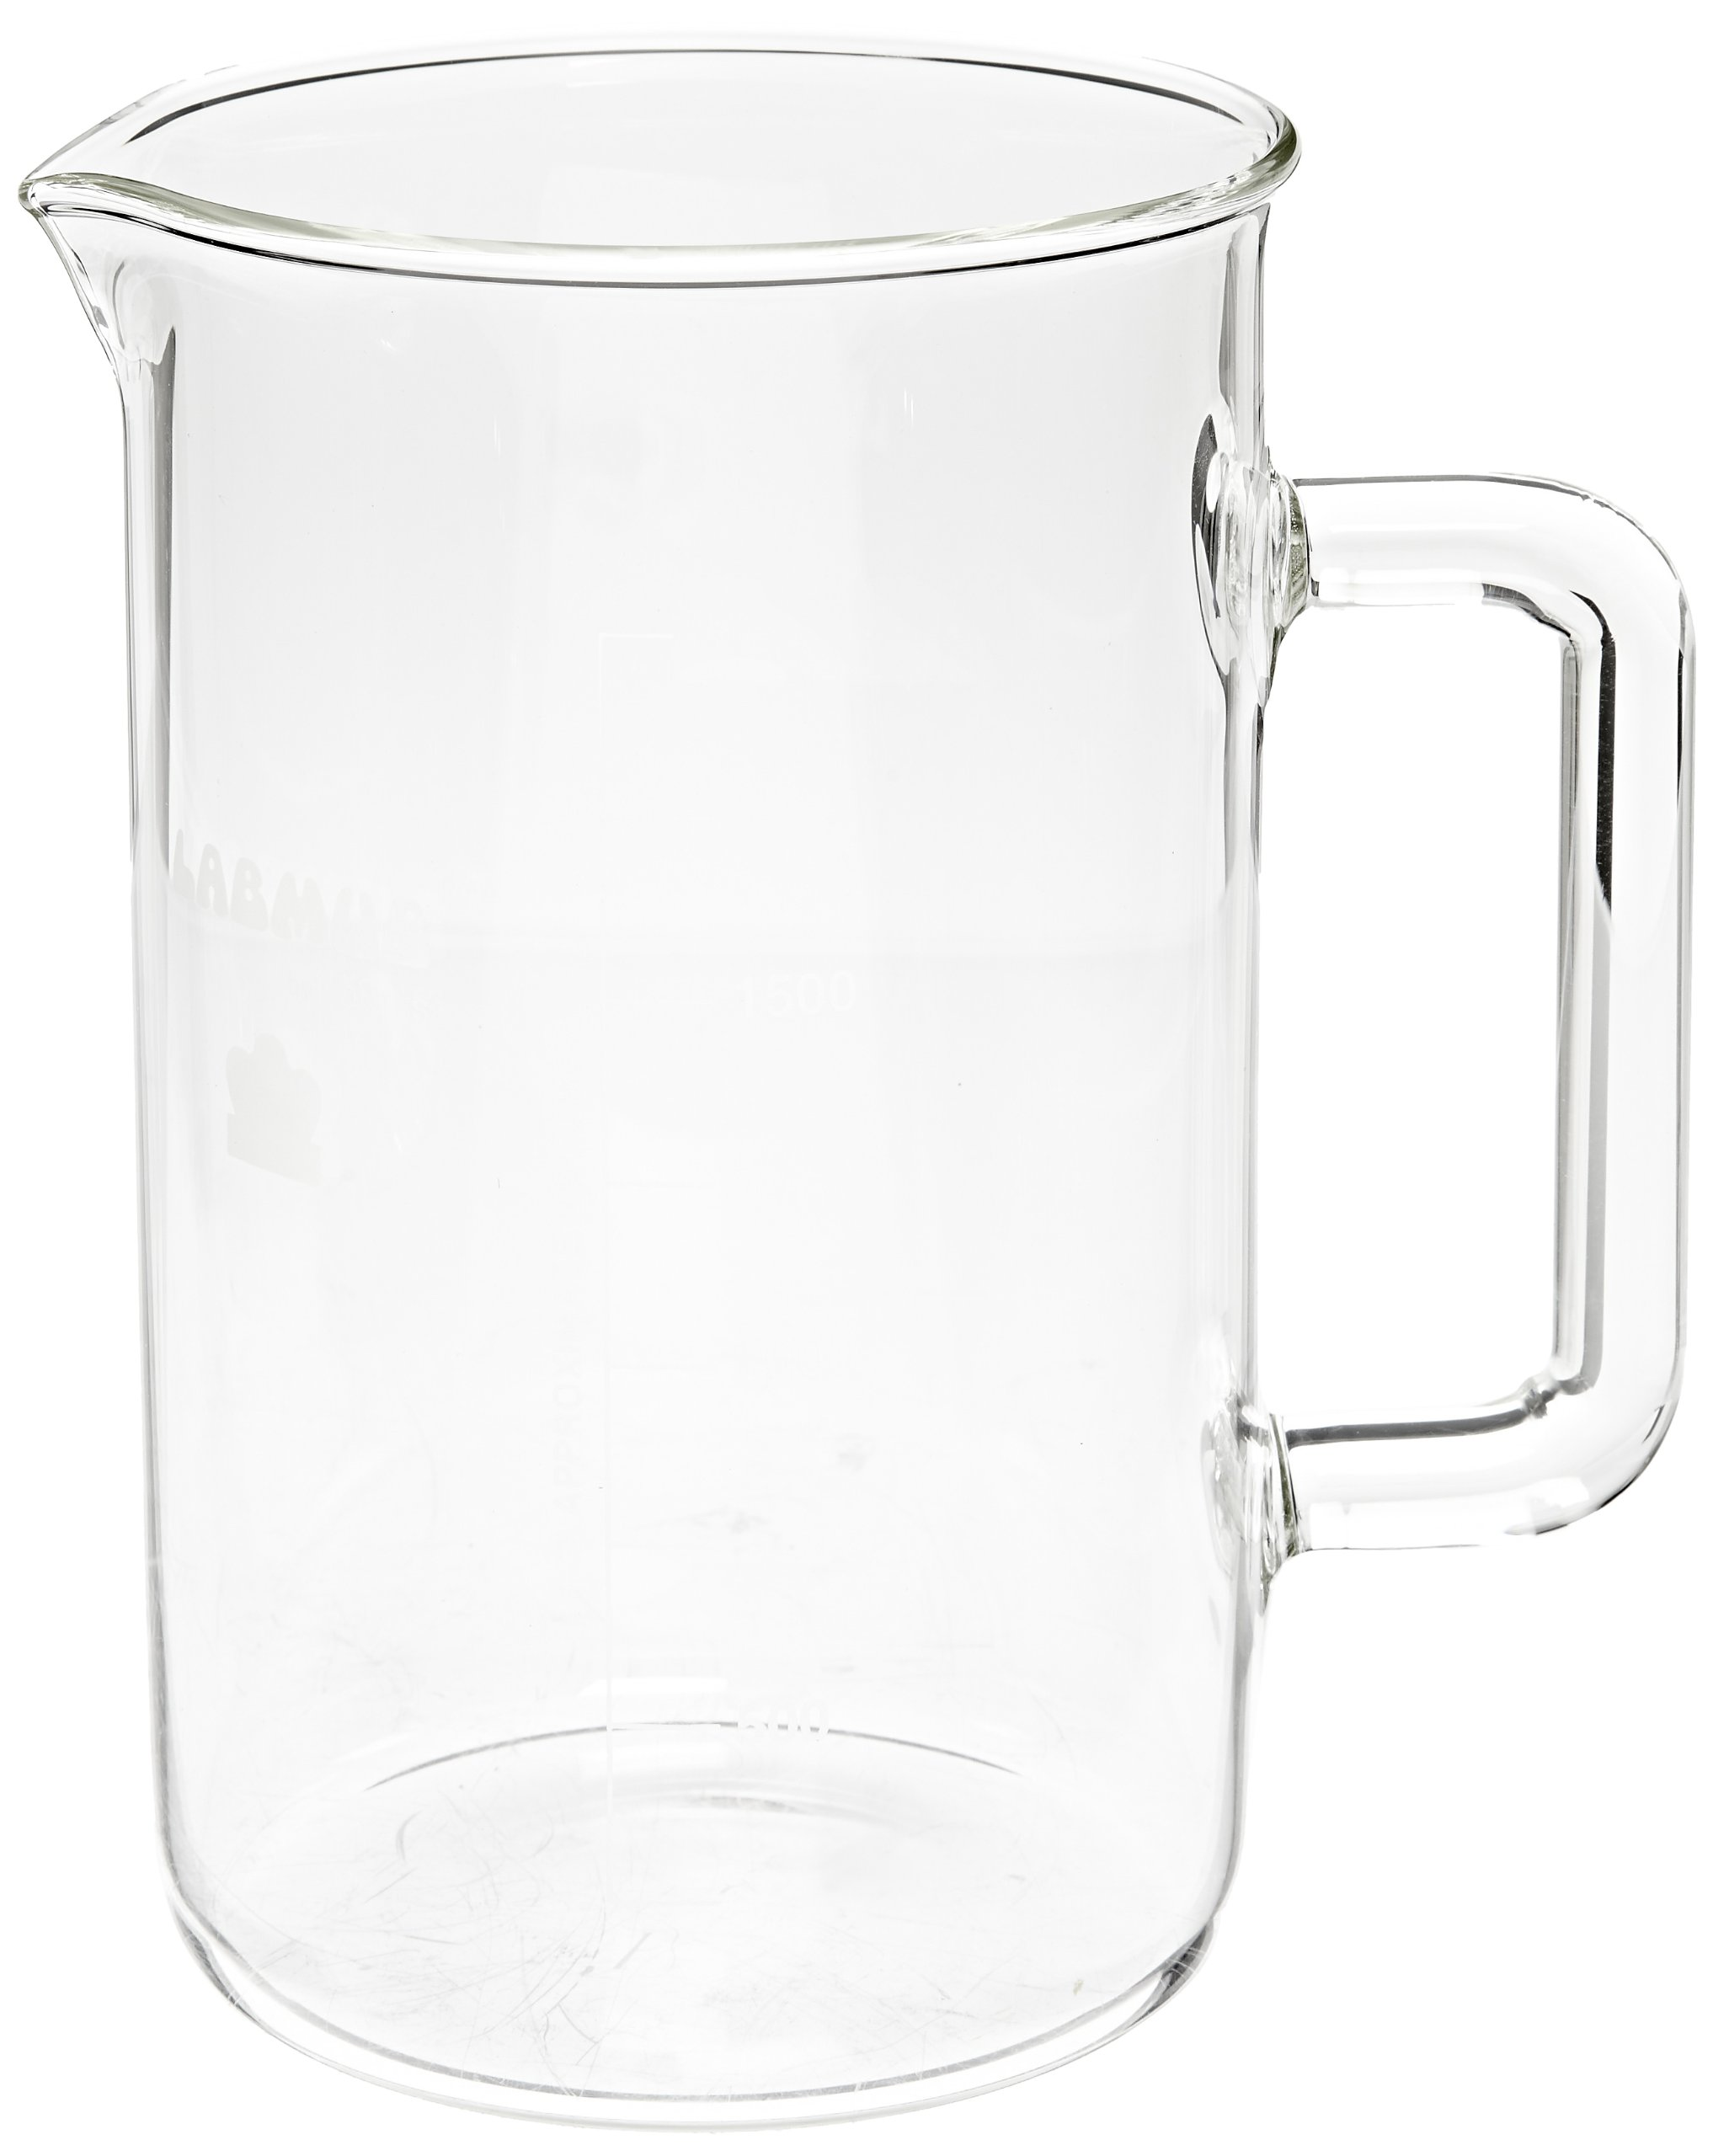 Kimble Berzelius Glass Six-Pack and Pitcher Beaker, 2L Capacity